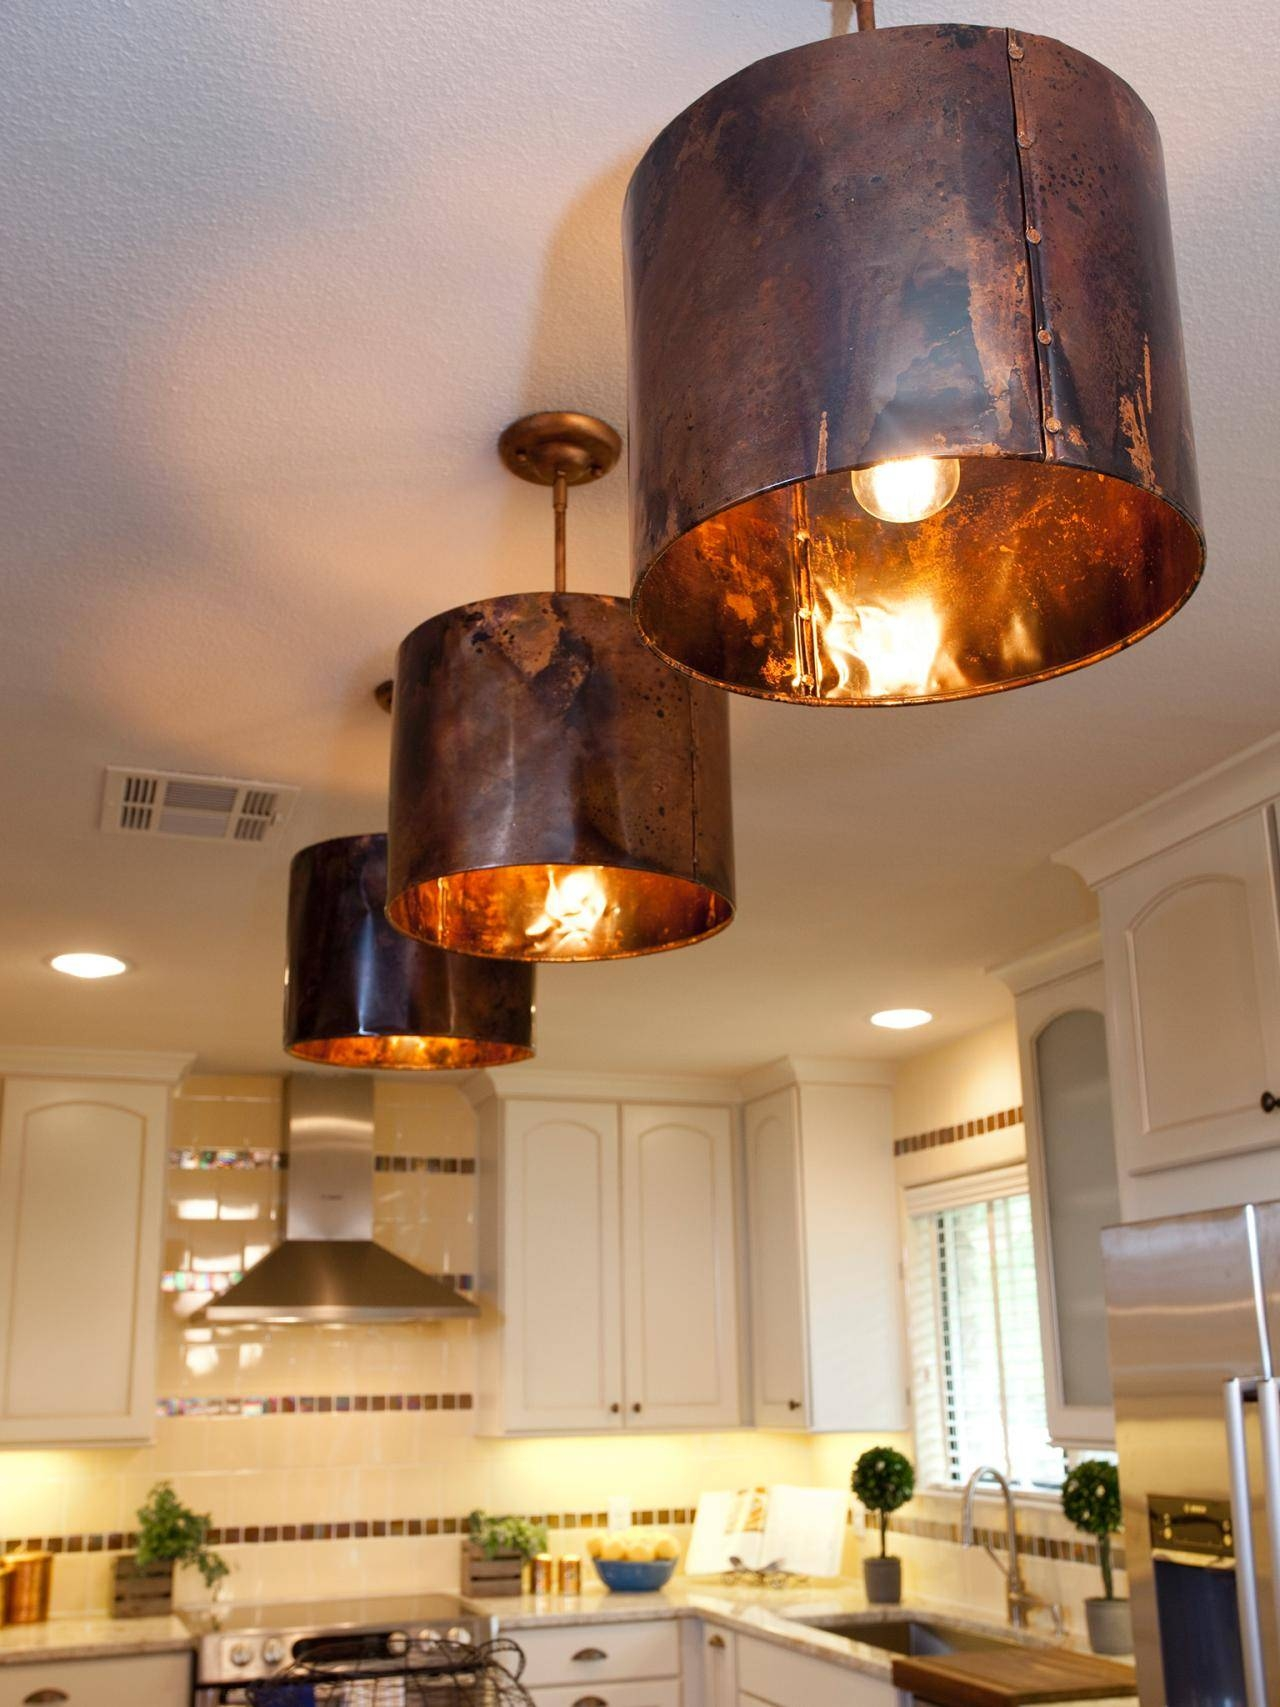 7 Ideas For Decorating With Copper - Pro Home Stores throughout Apothecary Pendant Lights (Image 4 of 15)